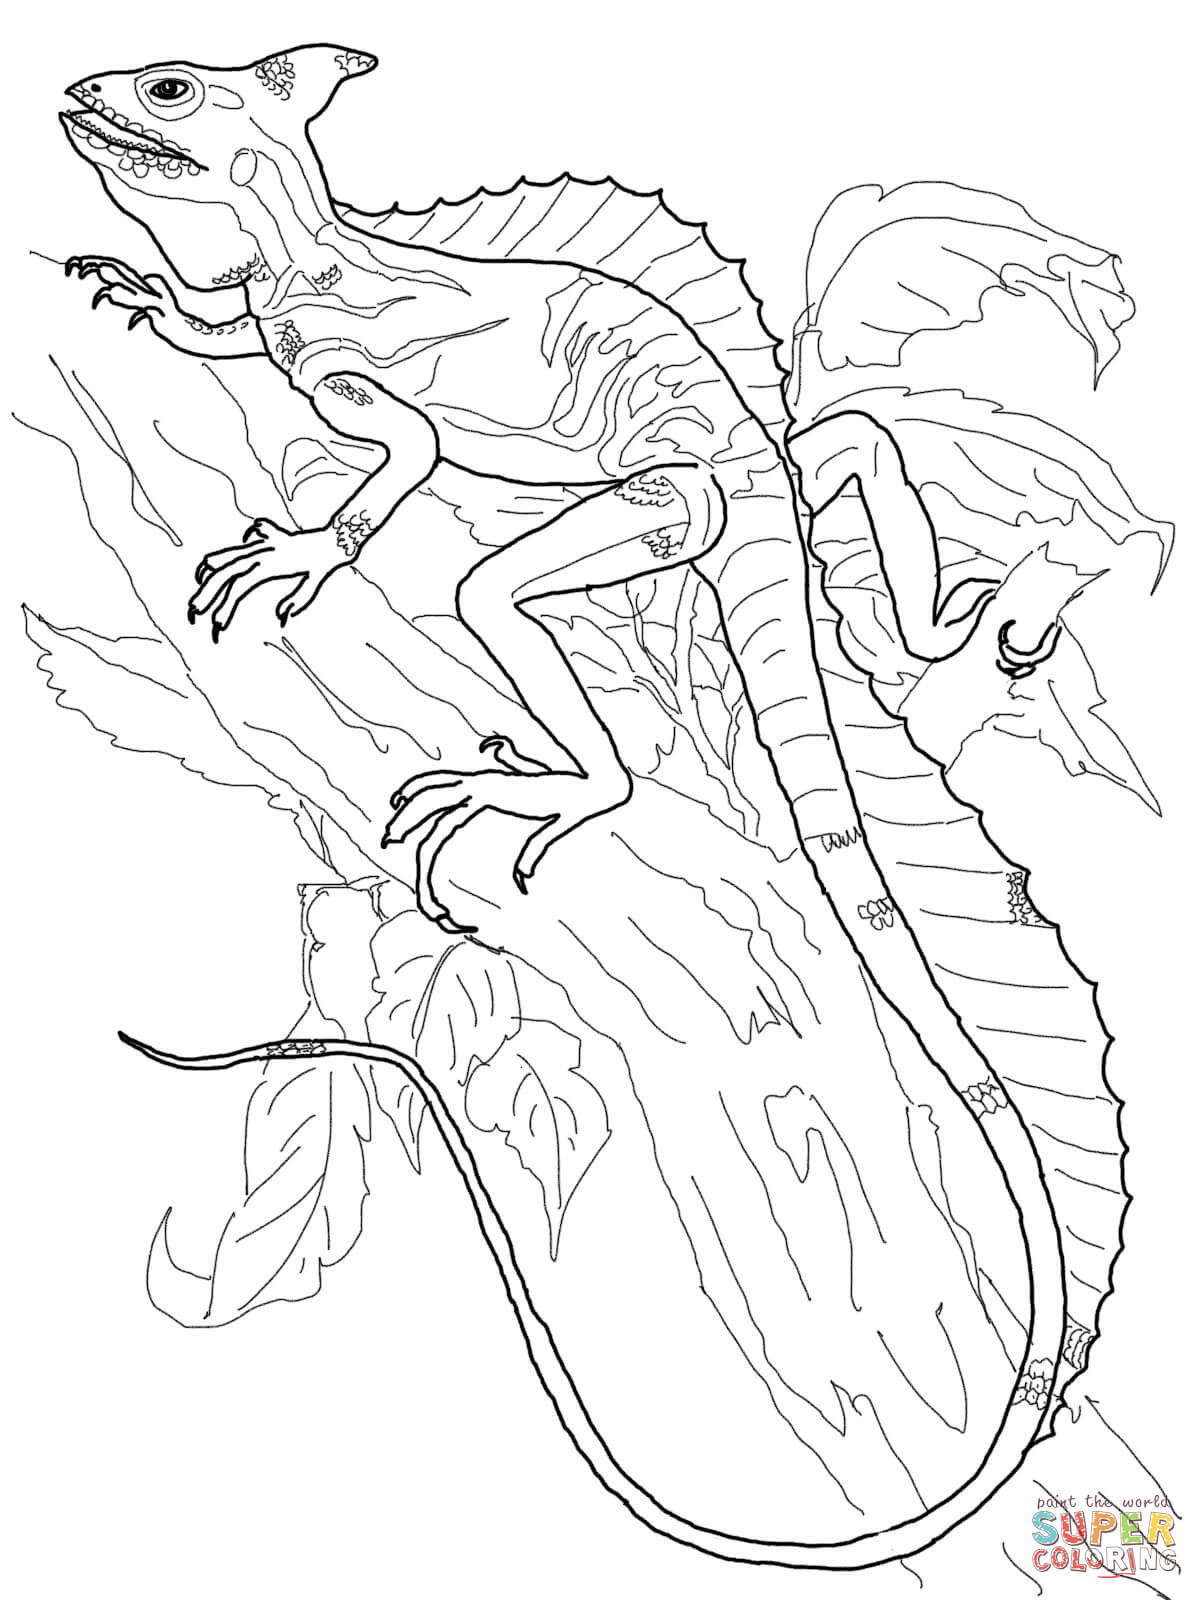 Skink - Free Coloring Pages